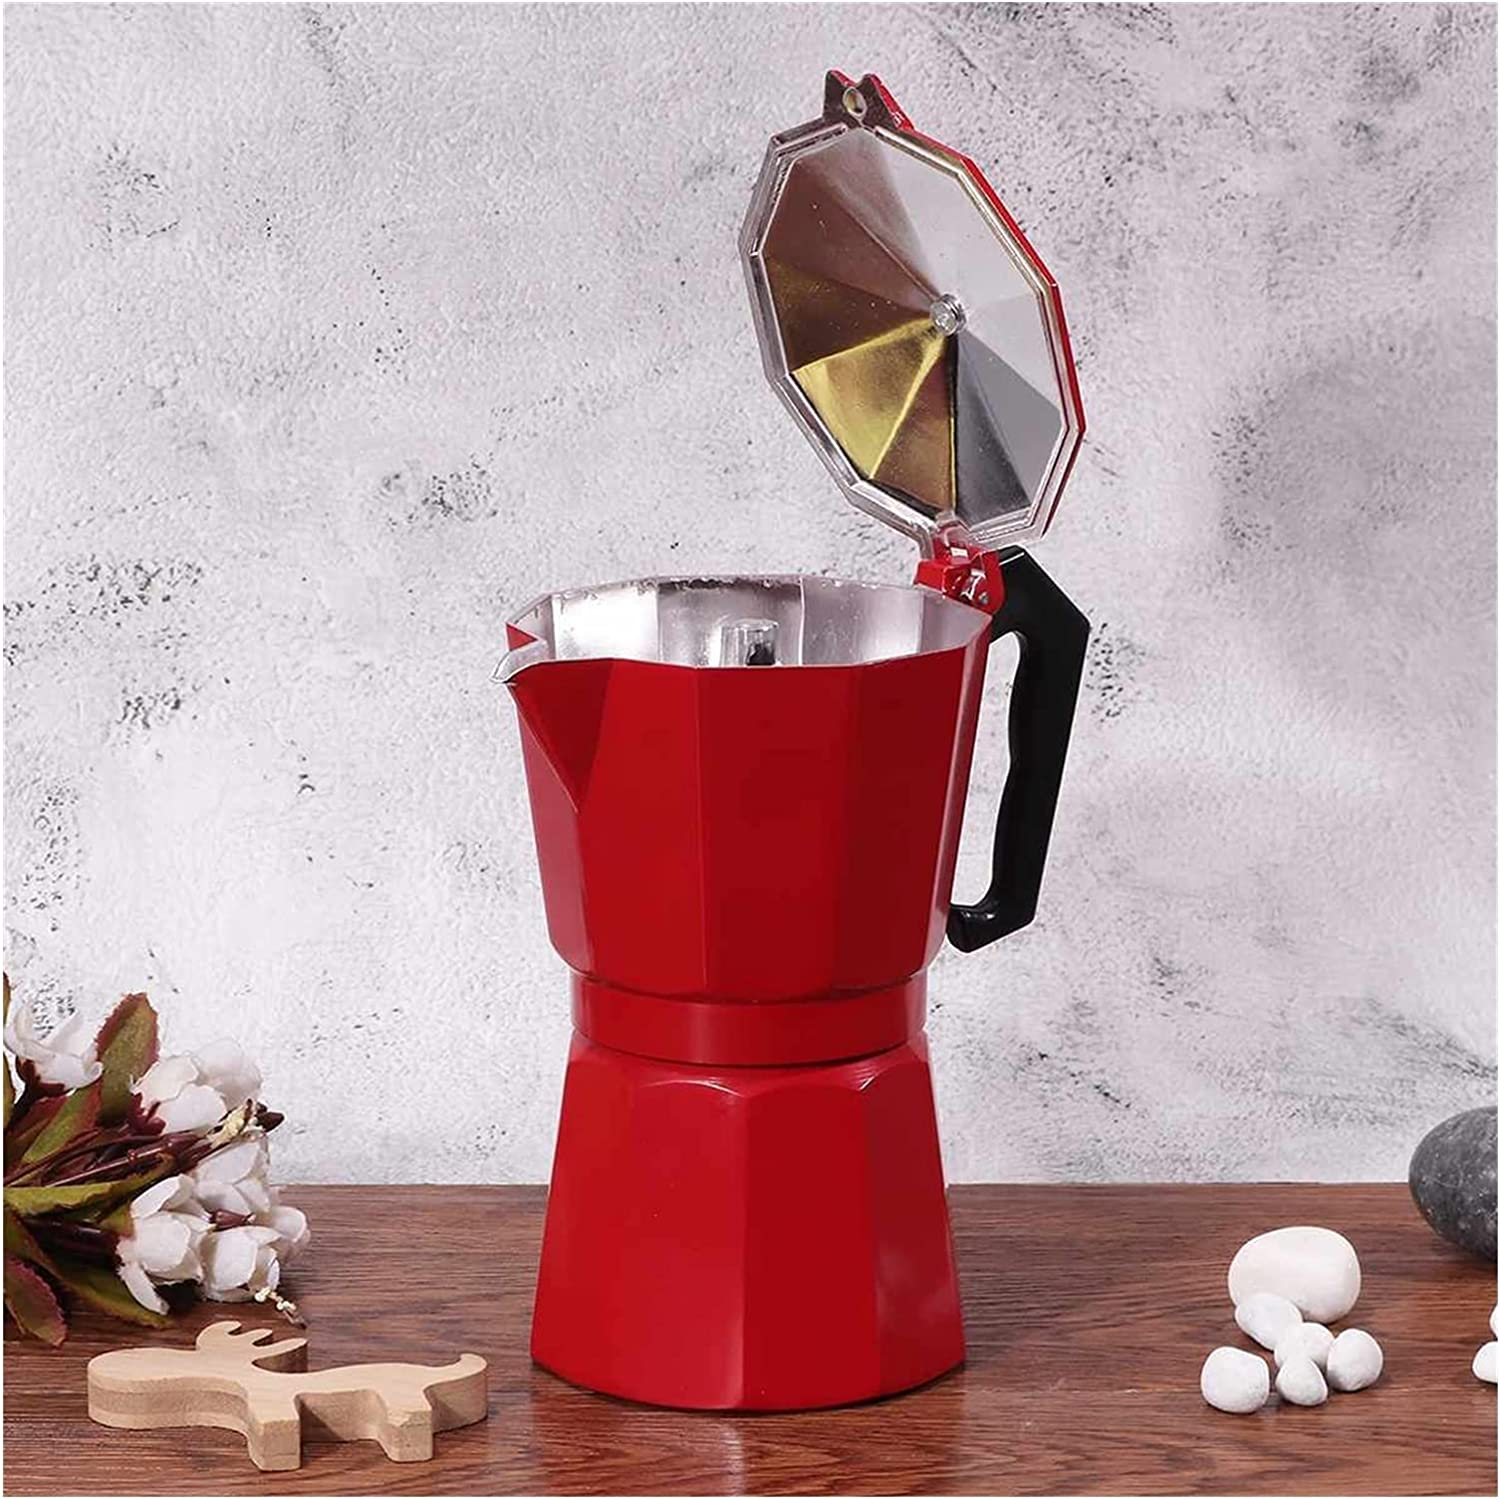 Coffee Maker Aluminum Max 72% OFF Durable Los Angeles Mall Ital Cafeteira Mocha